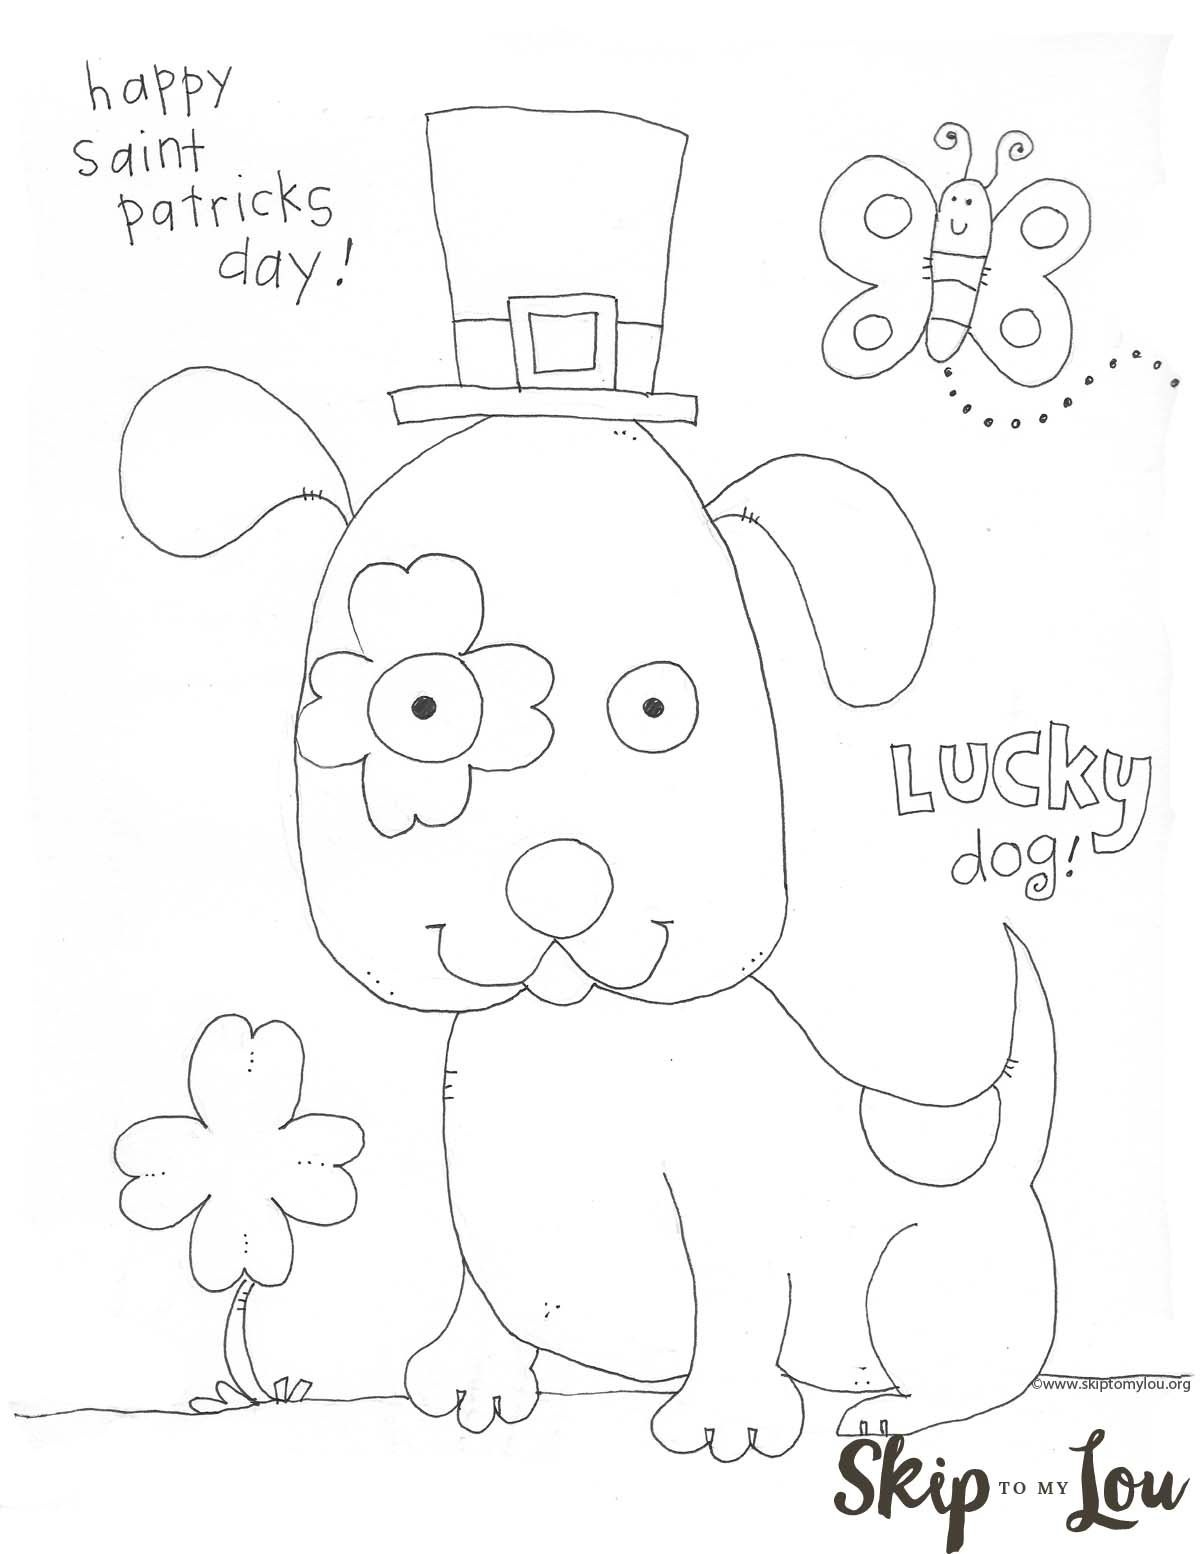 St Patricks Day Coloring Page For Preschoolers | St. Patrick's Day - Free Printable Saint Patrick Coloring Pages